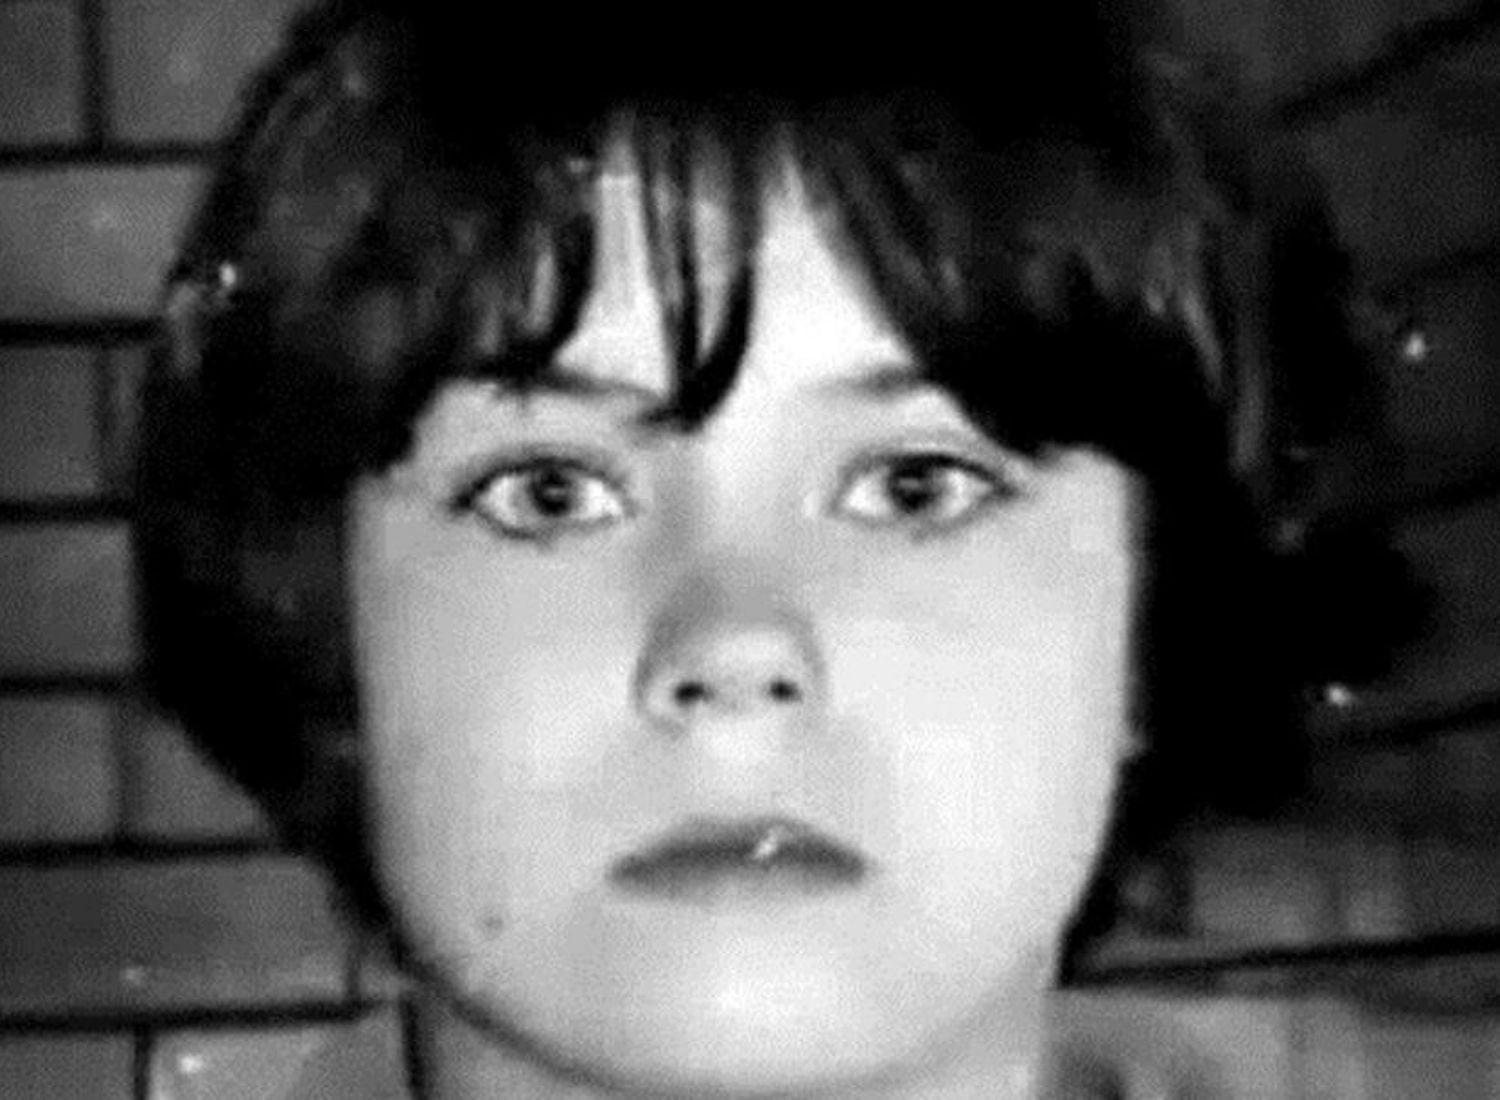 Mary Bell - The 11 Year Old Serial Killer